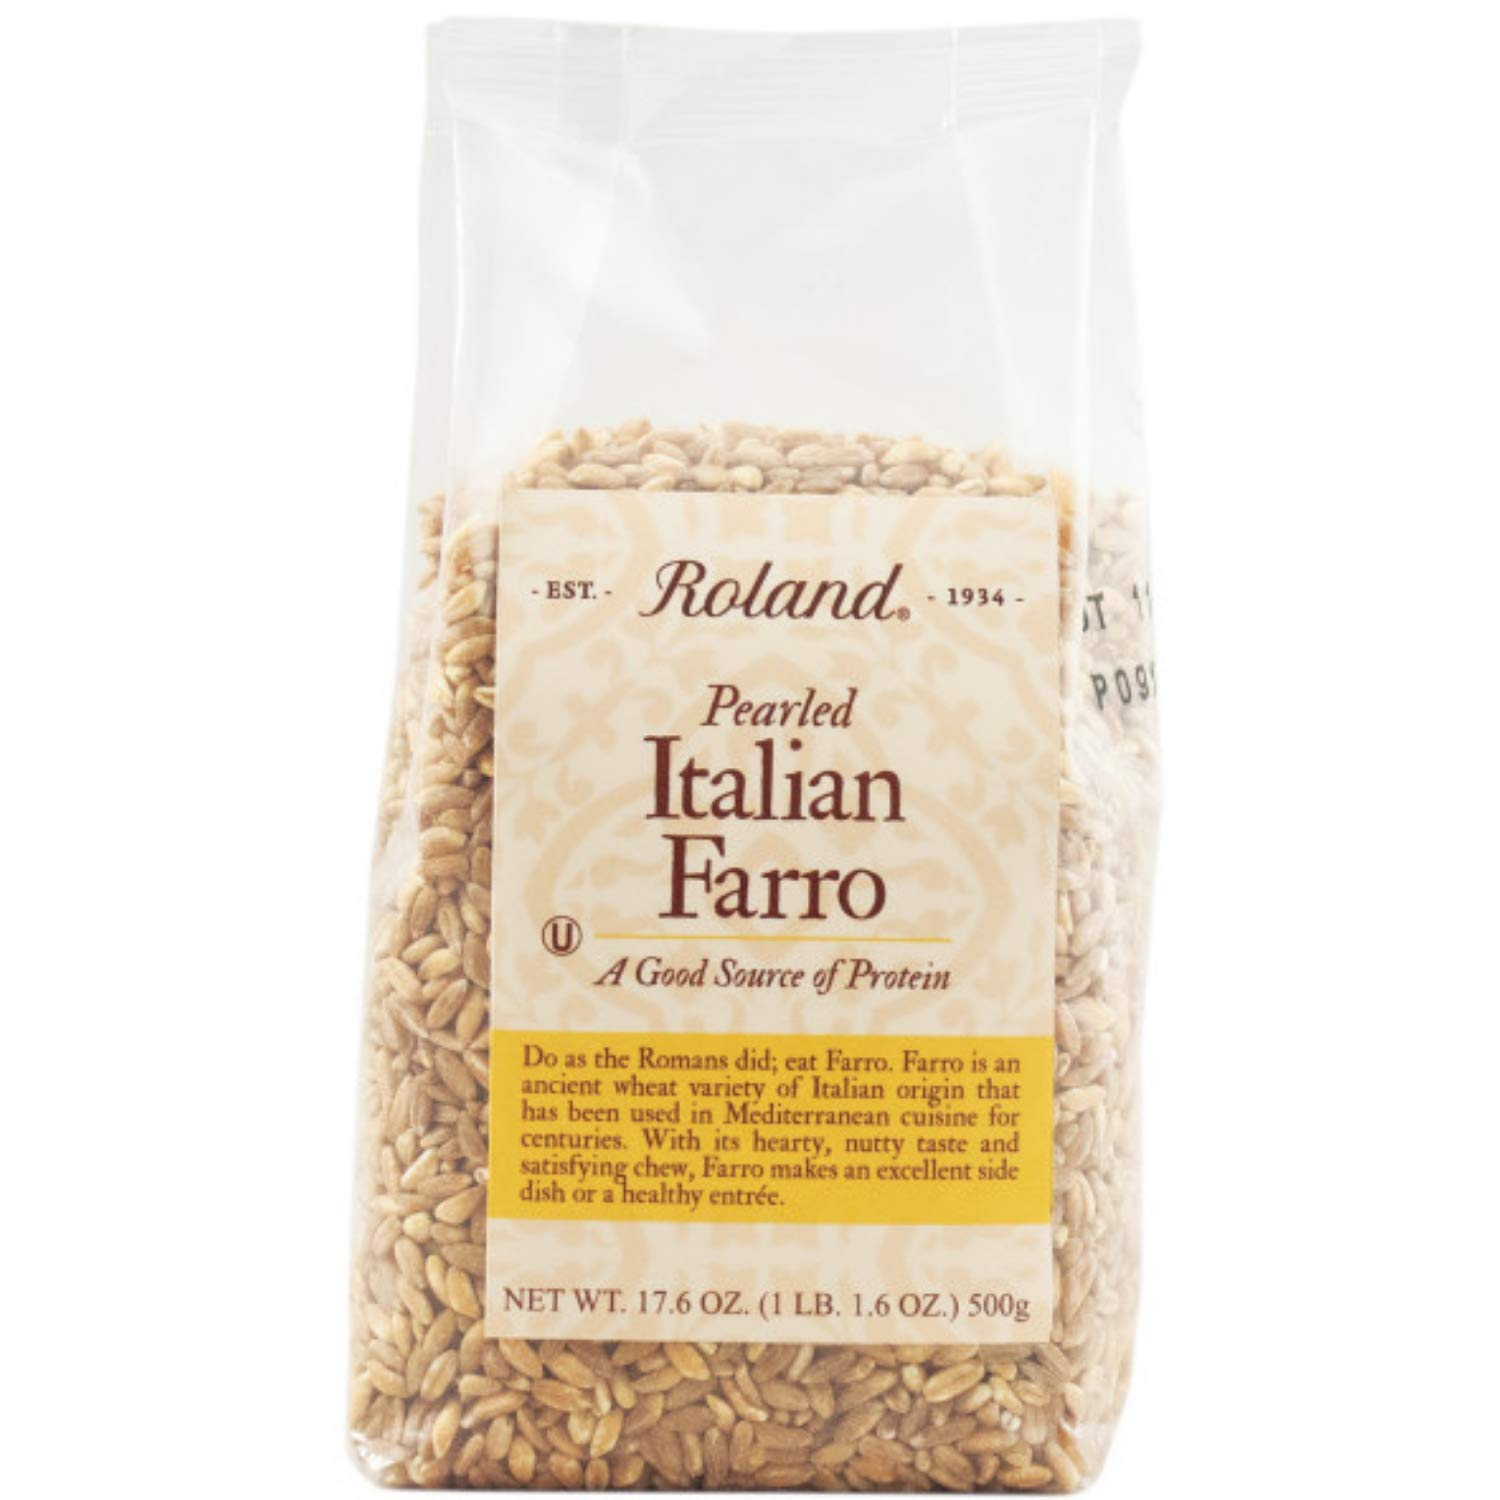 Roland Foods Pearled Italian Farro, Specialty Imported Food, 17.6-Ounce Bag, Pack of 3